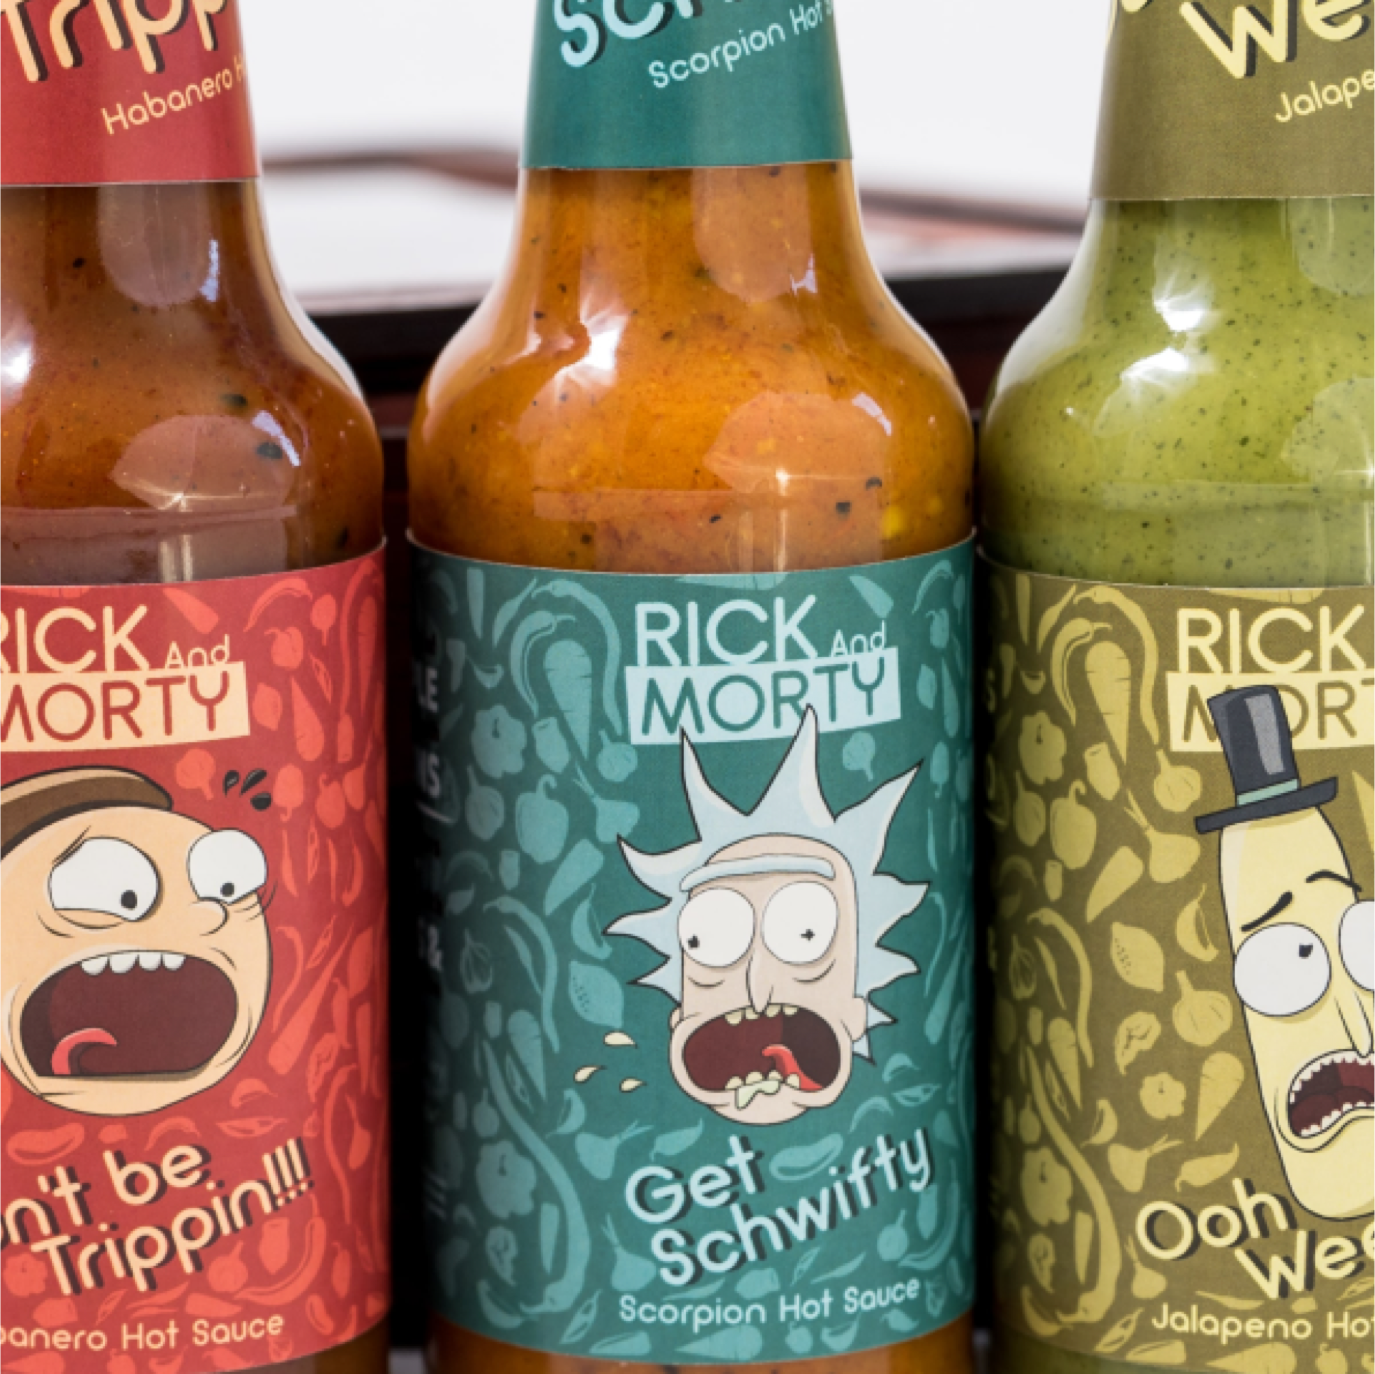 Rick and morty -  Brand packaging project